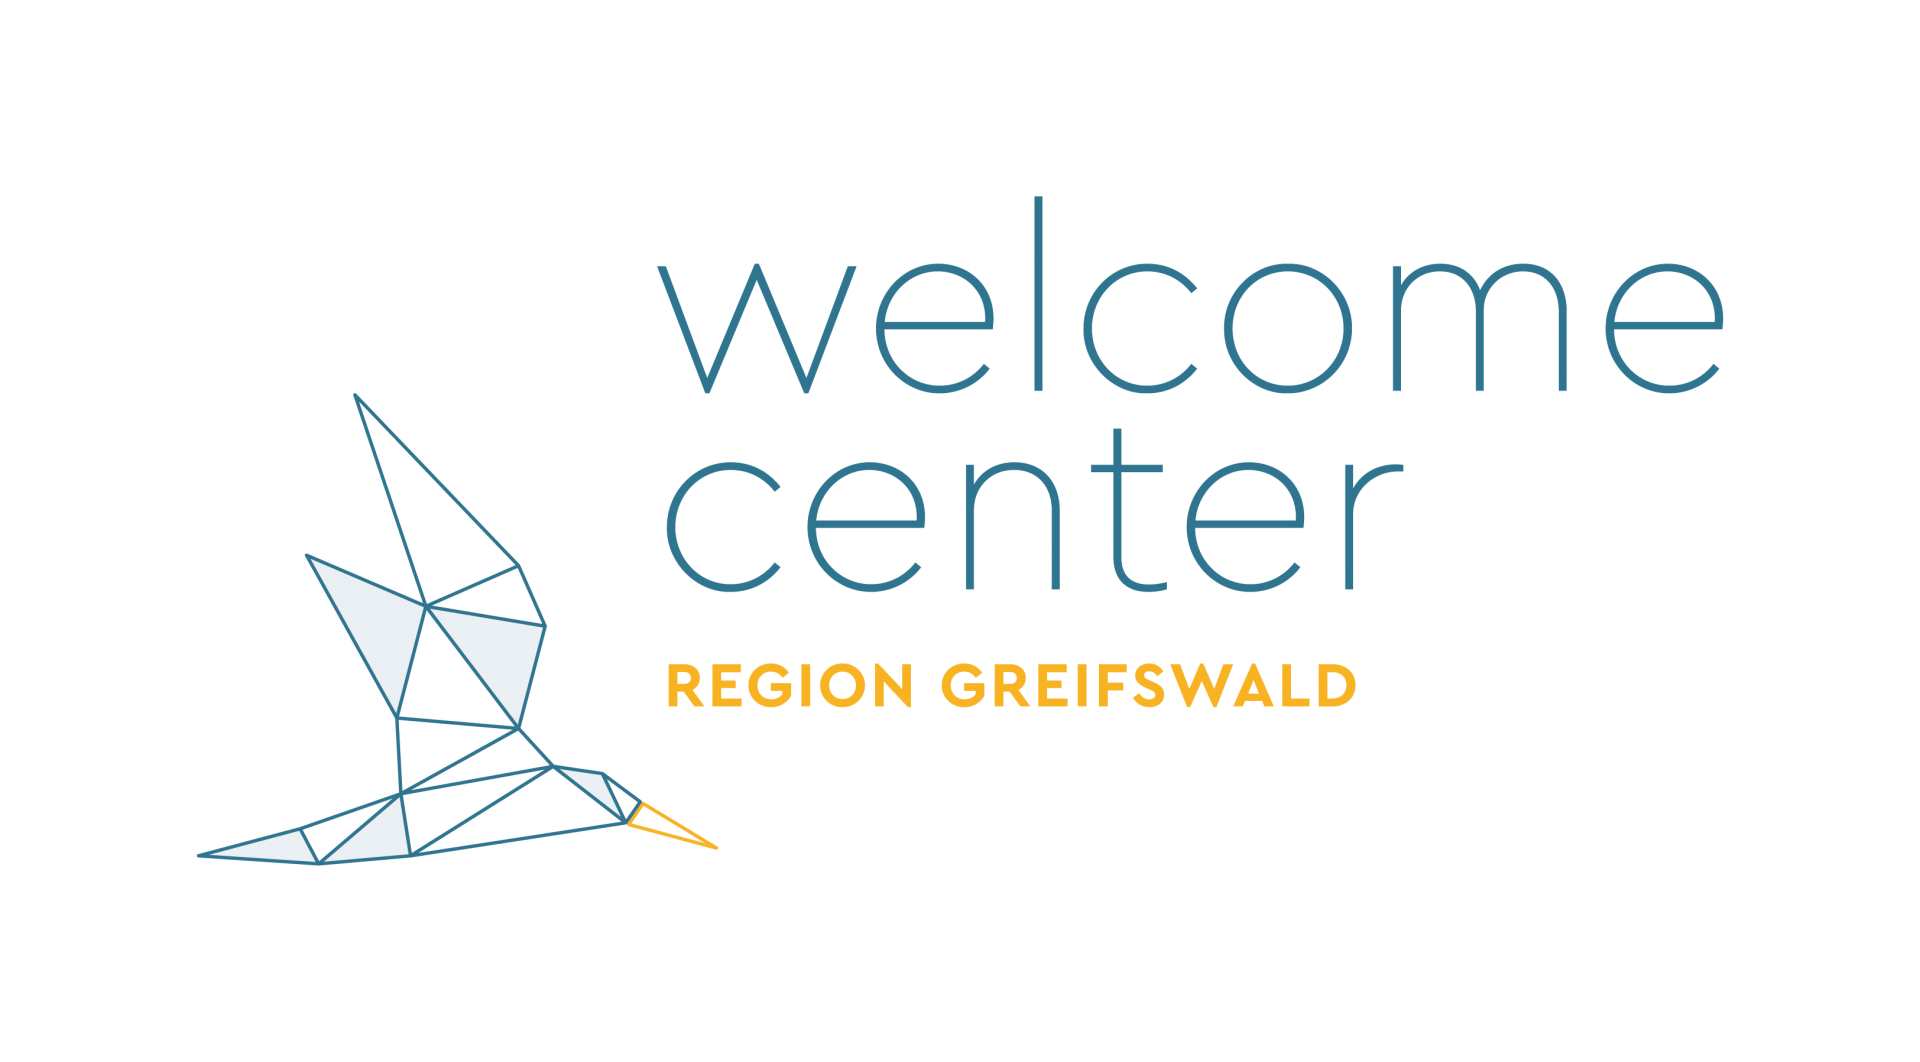 Welcome Center Region Greifswald